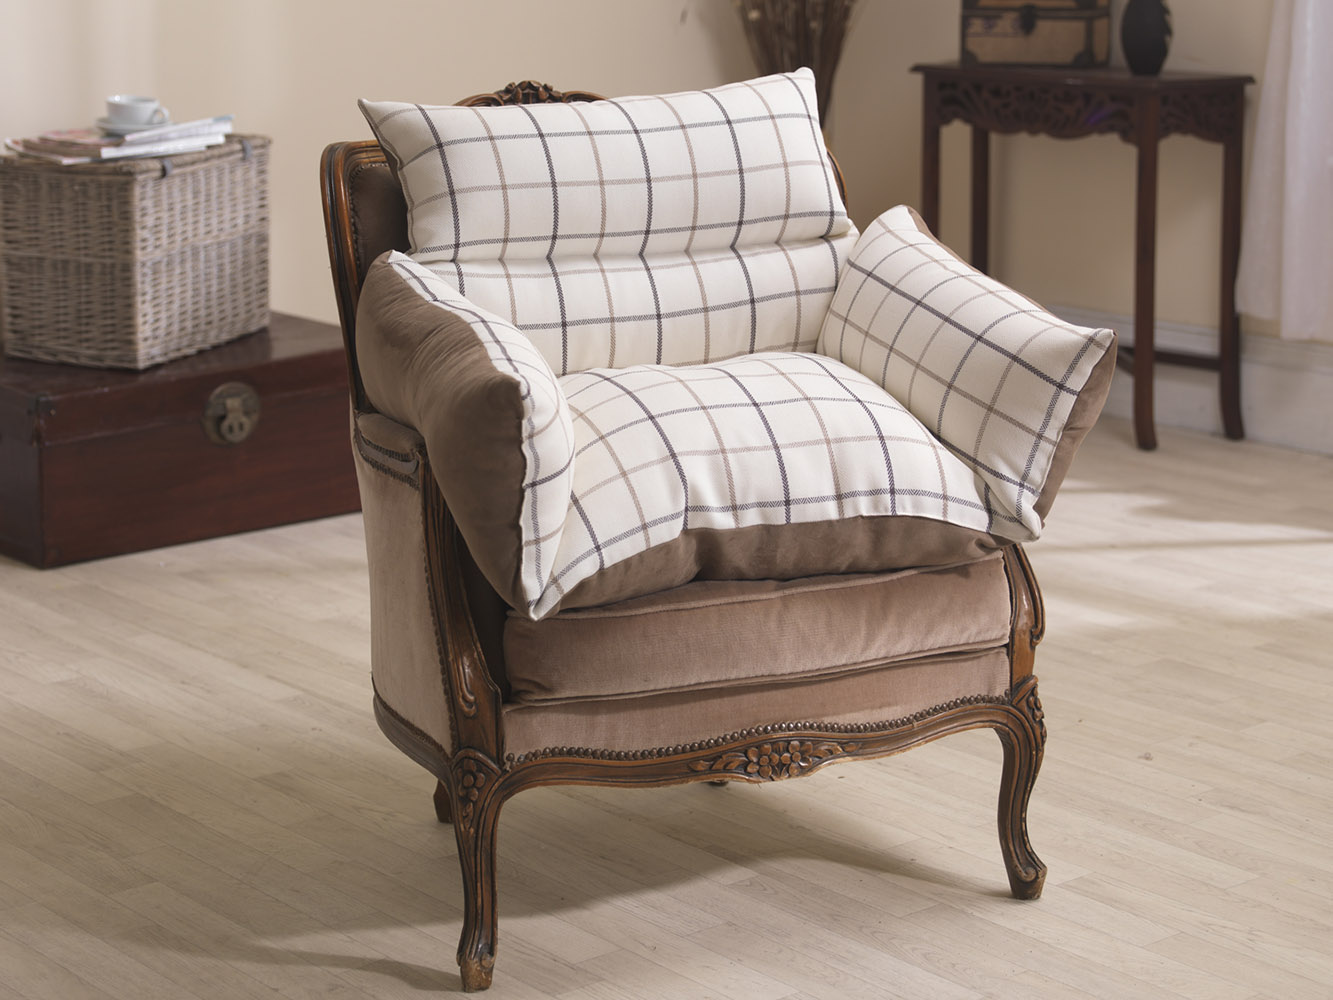 Luxurious Comfort Reversible Suede and Patterned Fabric Support Arm Chair Nest